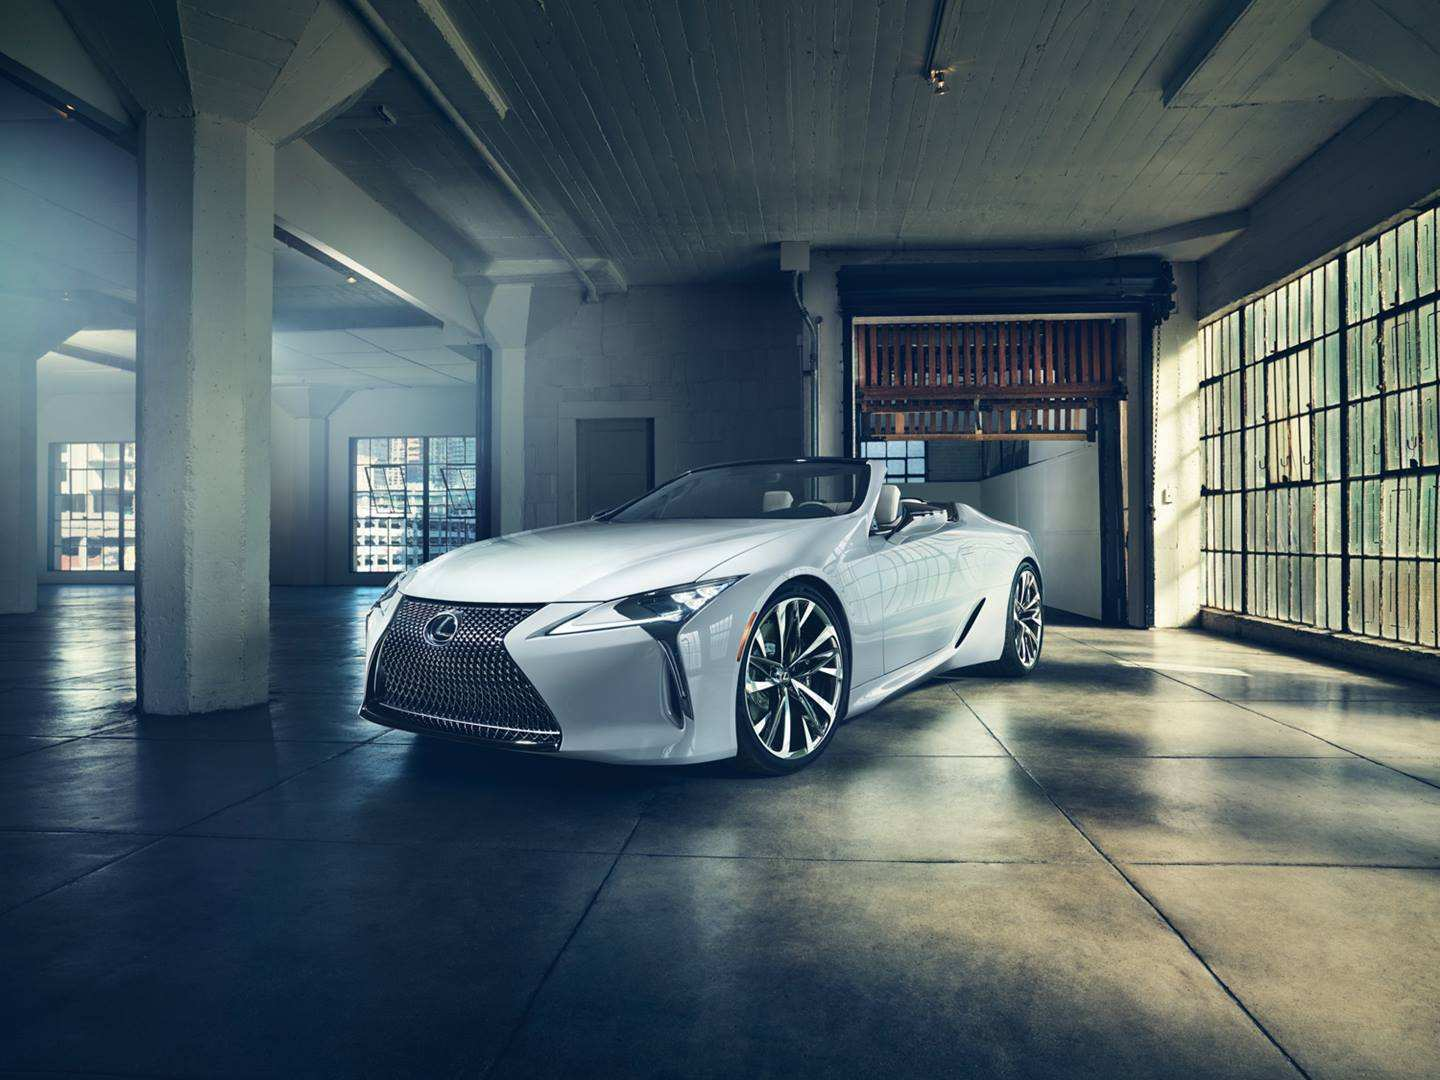 47 All New 2020 Lexus Lf Lc Spesification